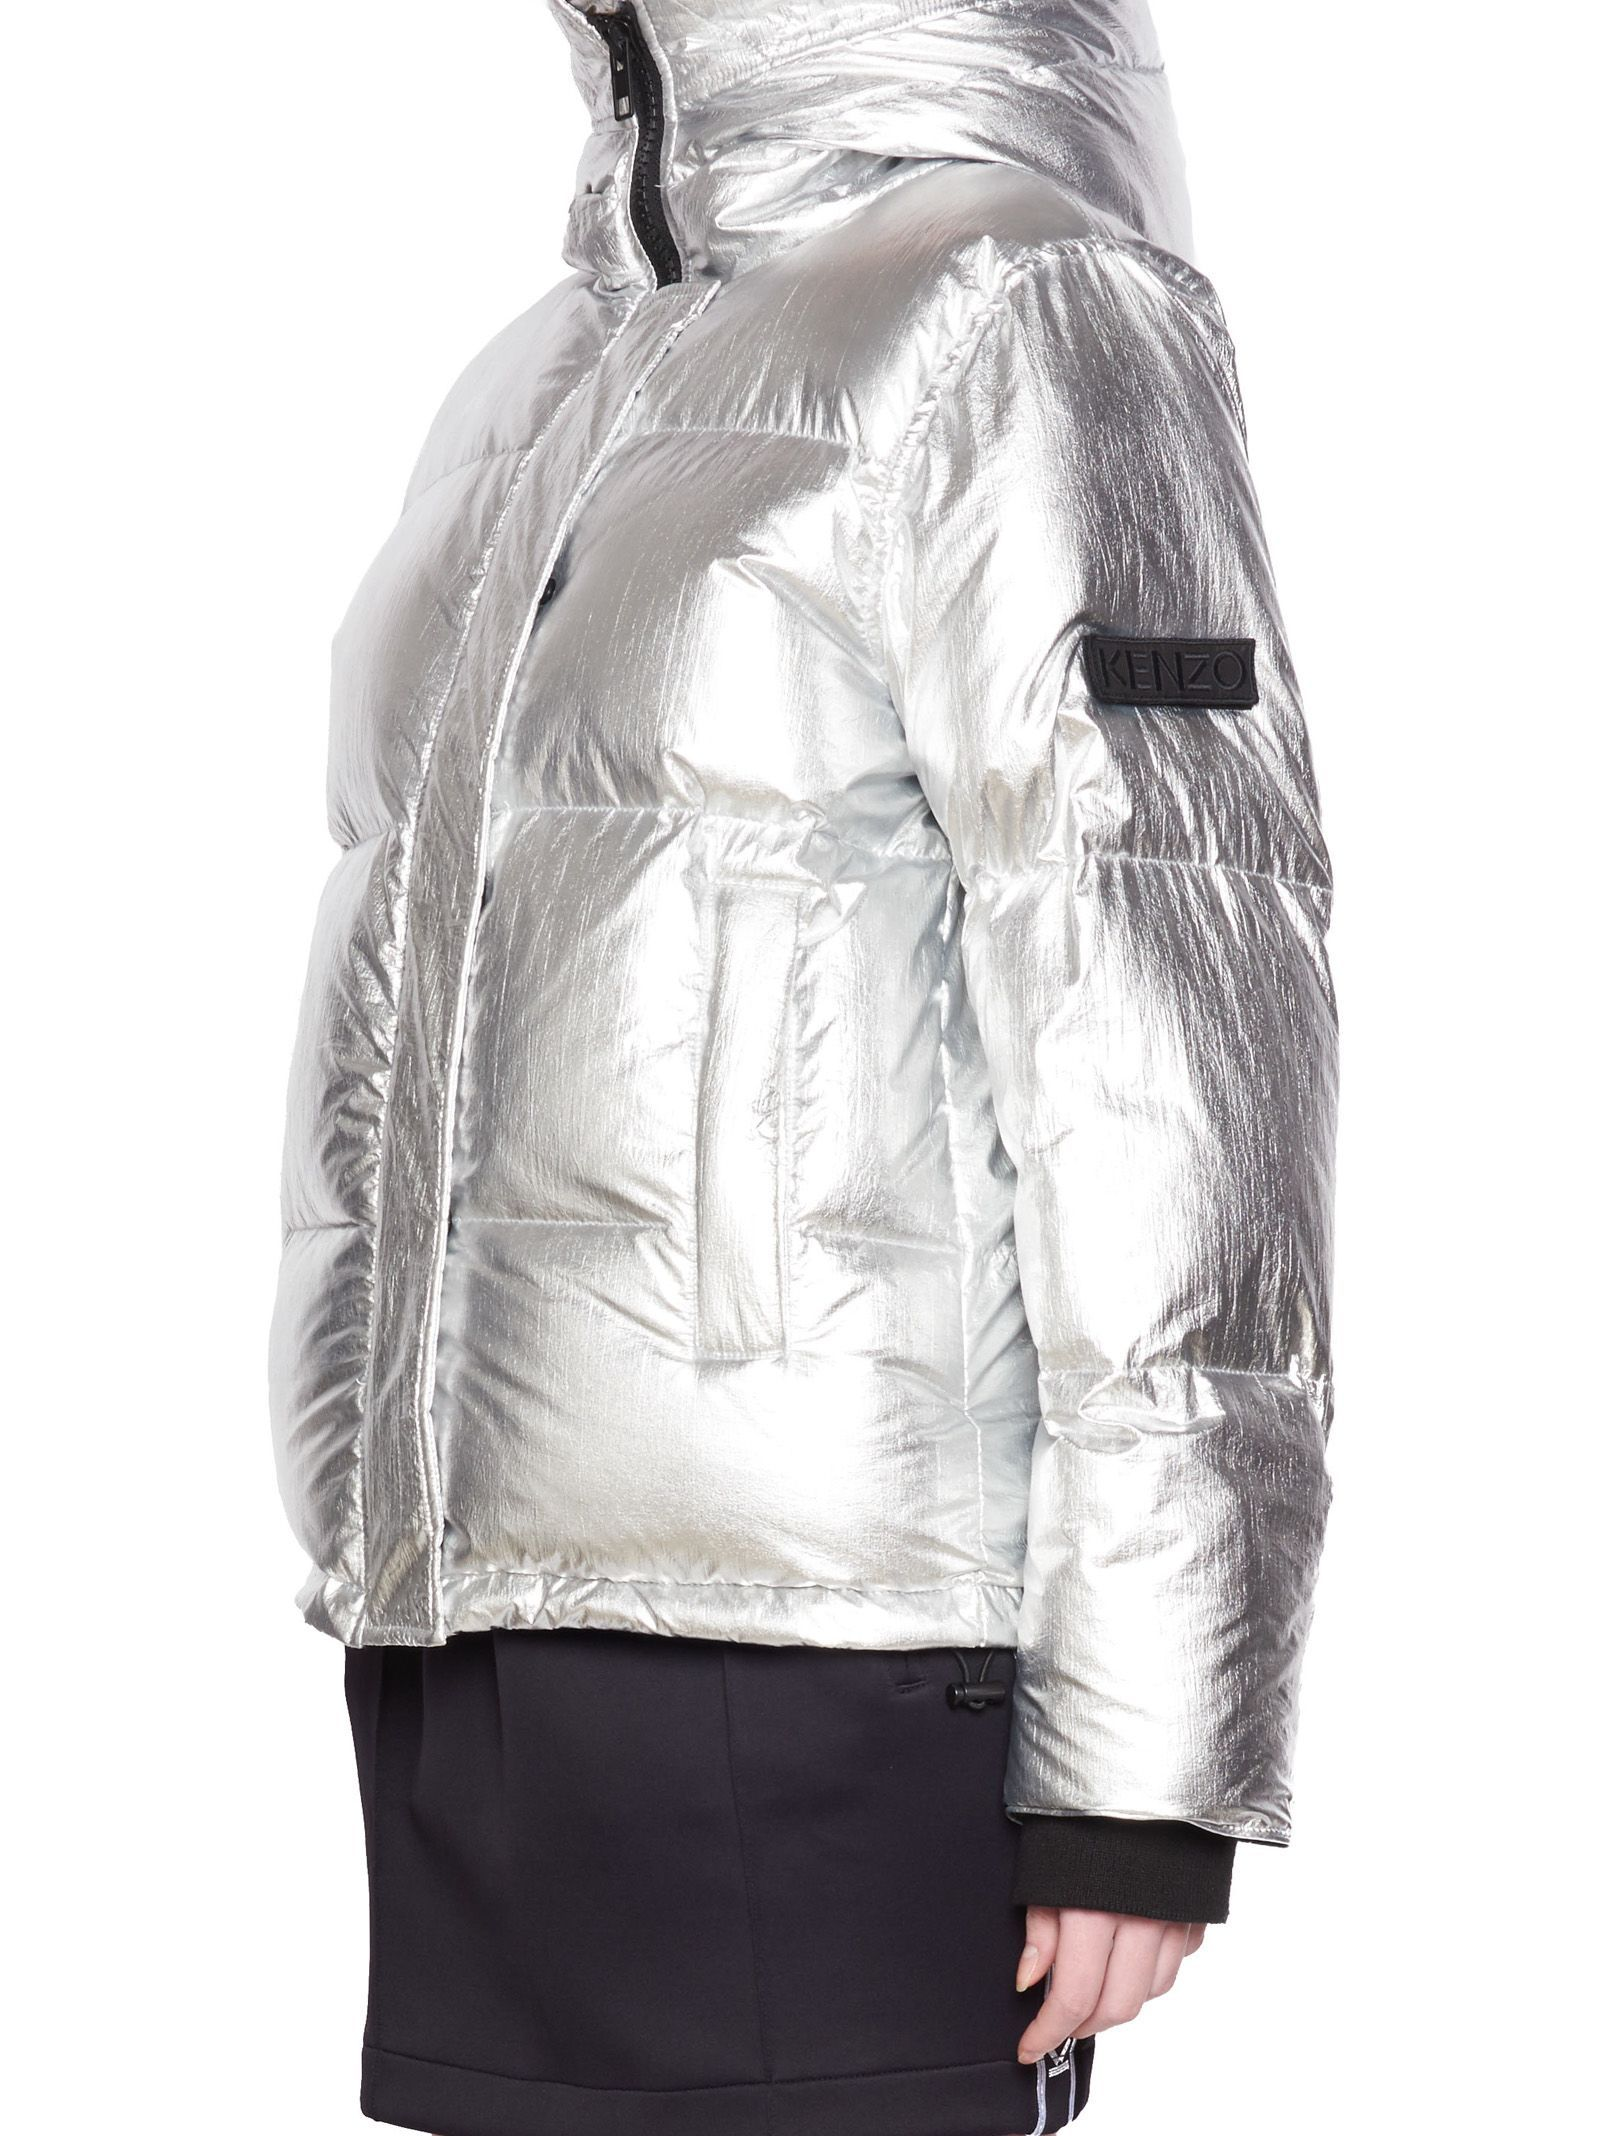 169ec92b Kenzo - Kenzo Jacket - Silver, Women's Jackets | Italist | INSULATED ...